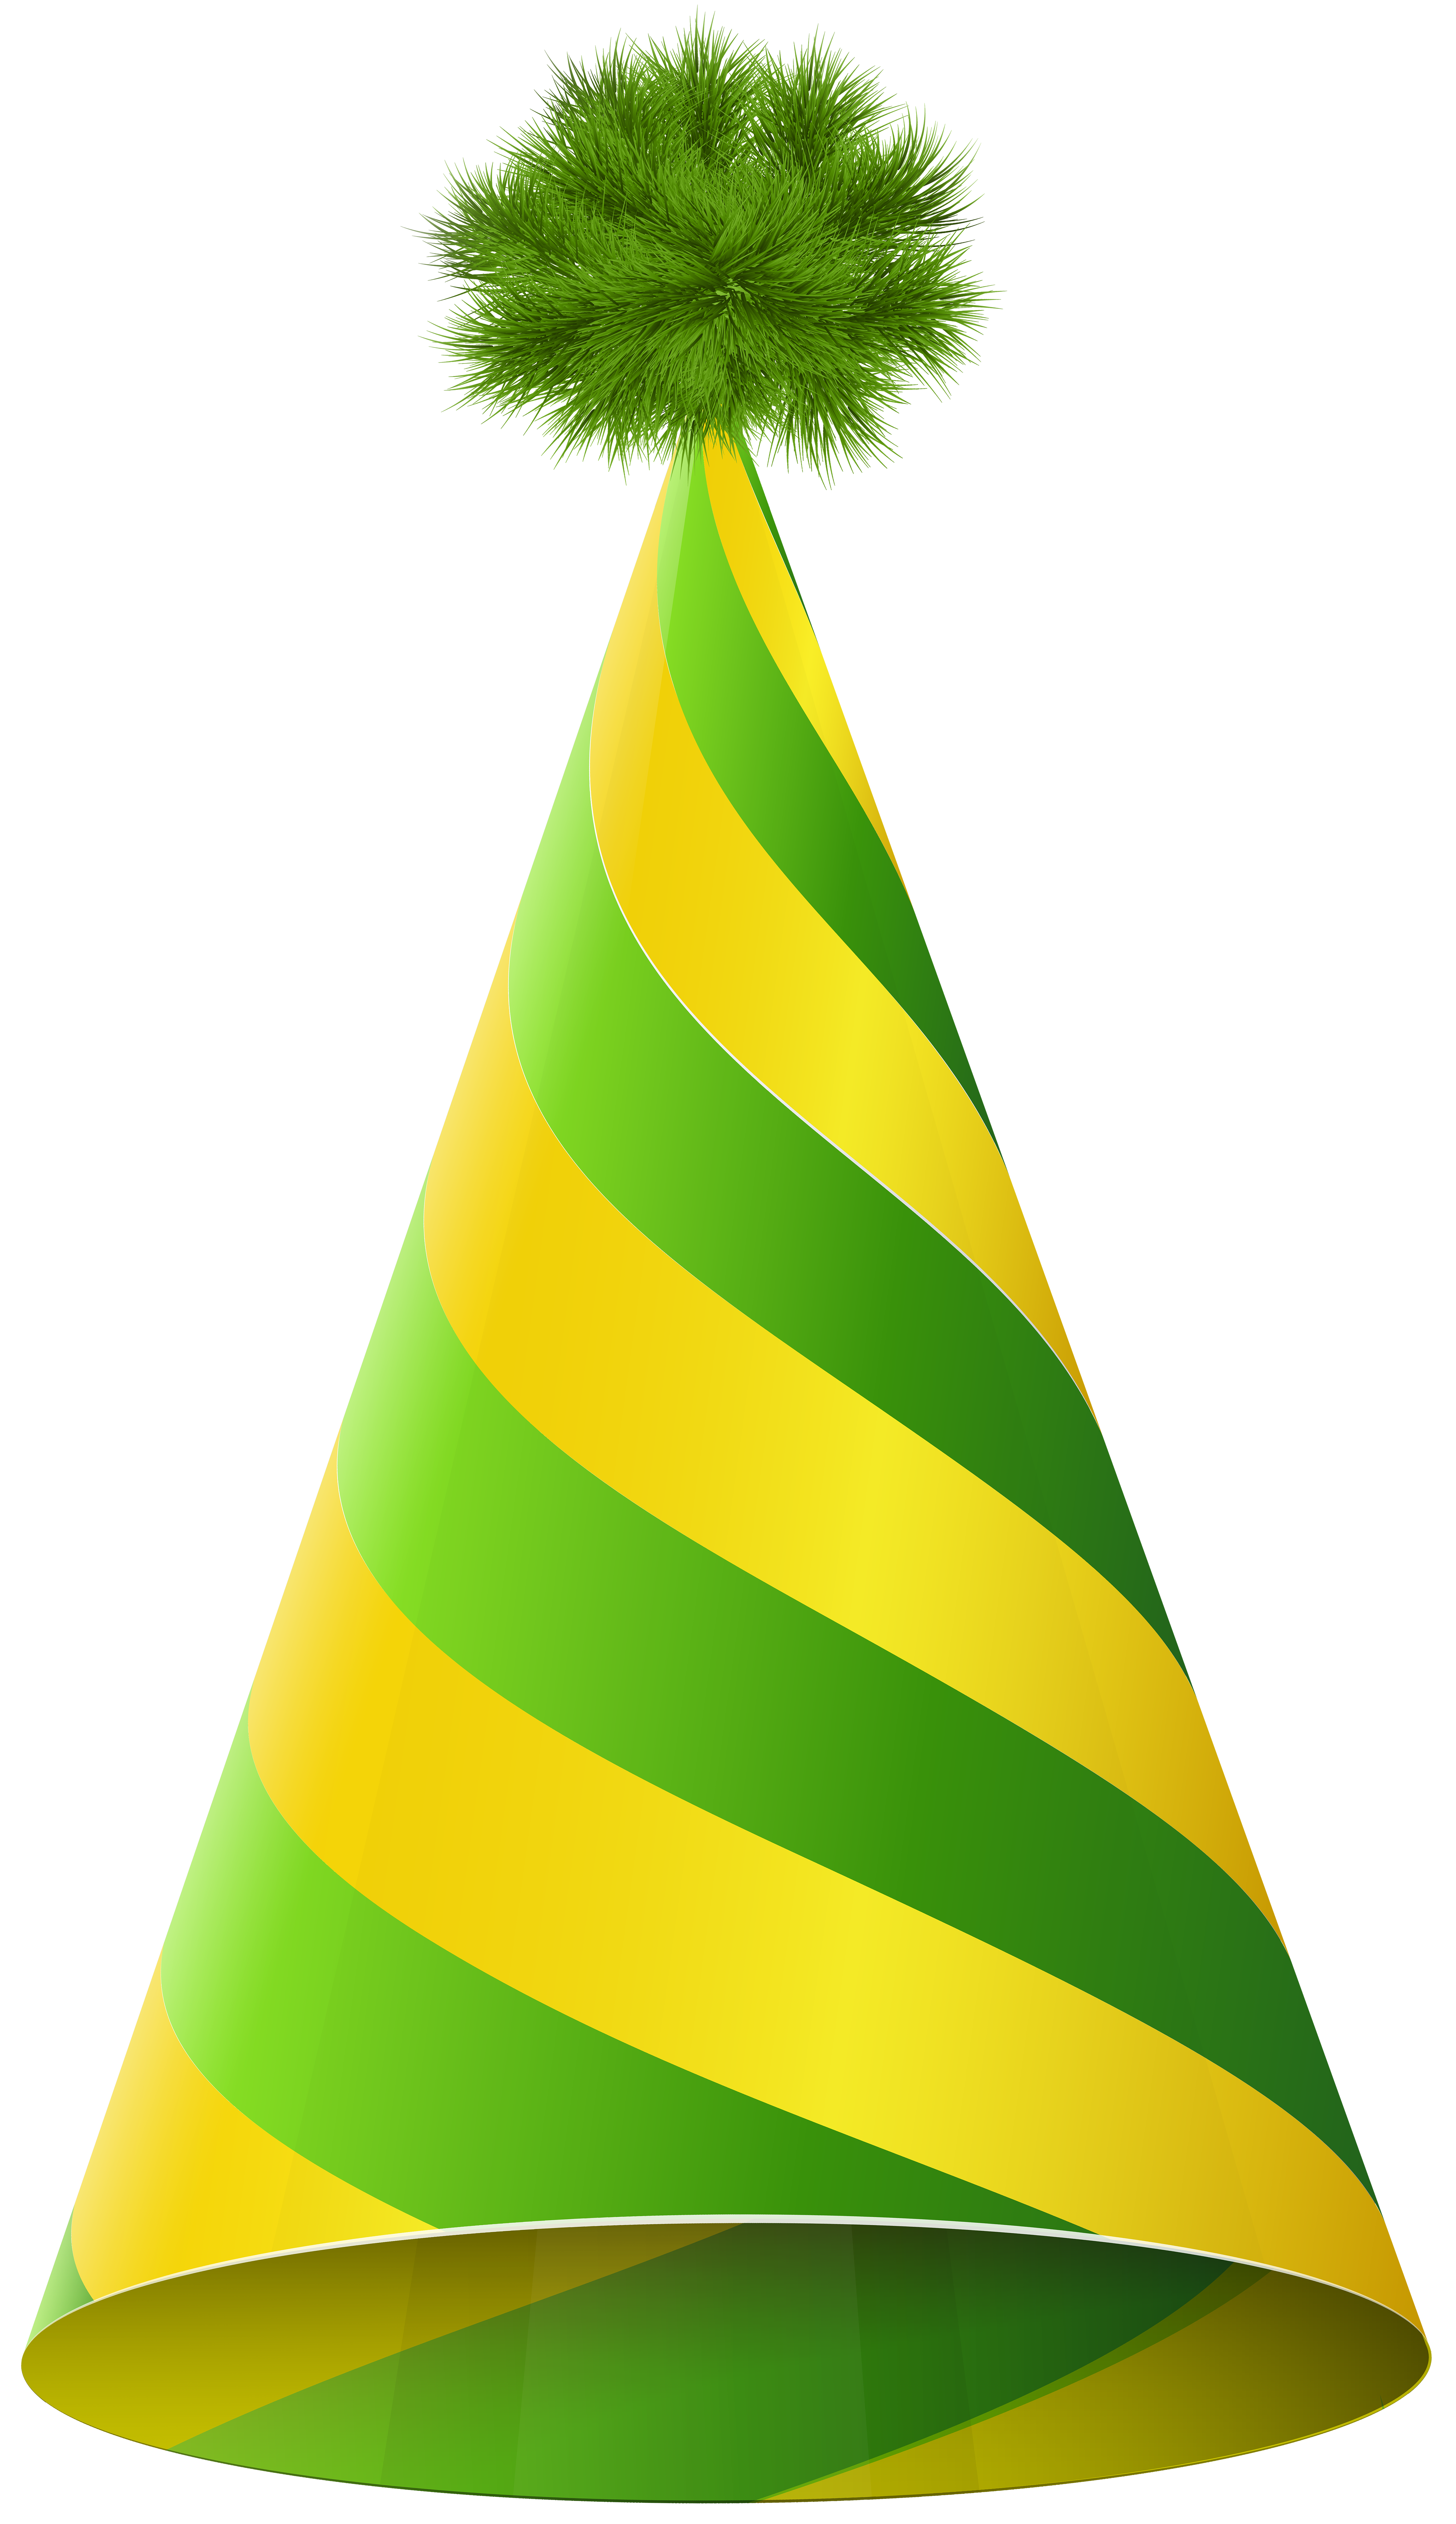 Yellow party hat clipart graphic royalty free download Party Hat Green Yellow Transparent PNG Clip Art Image | Gallery ... graphic royalty free download